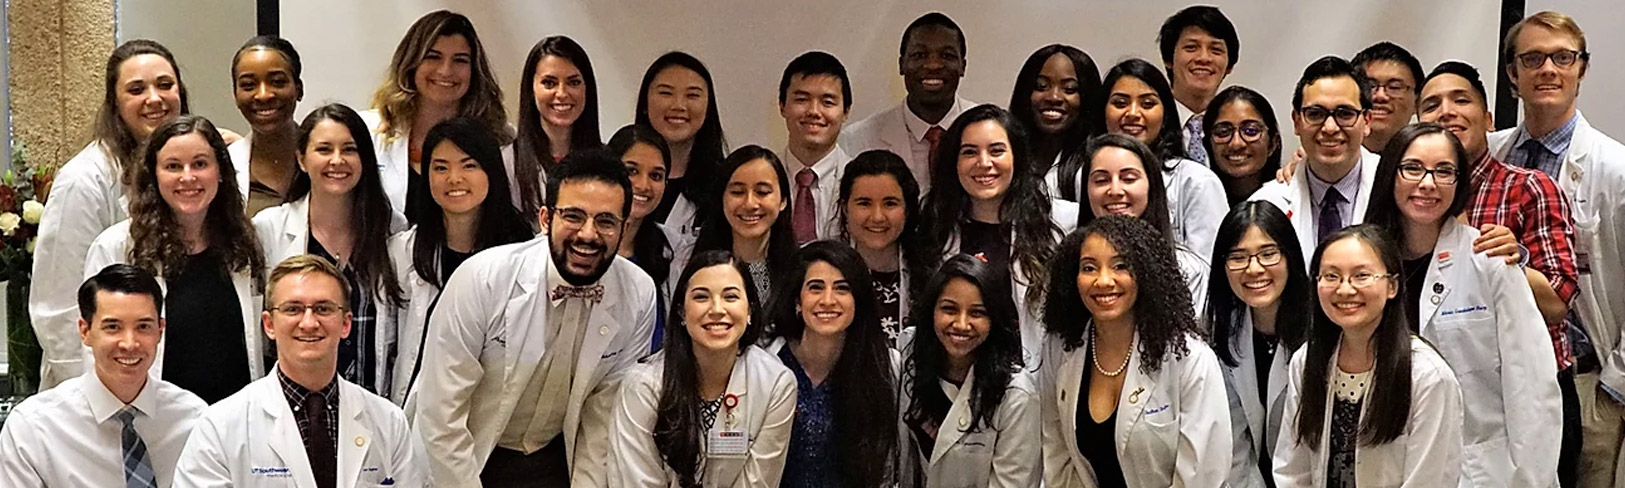 Group of young people in lab coats smiling, with Gold Humanism Honor Society written over them